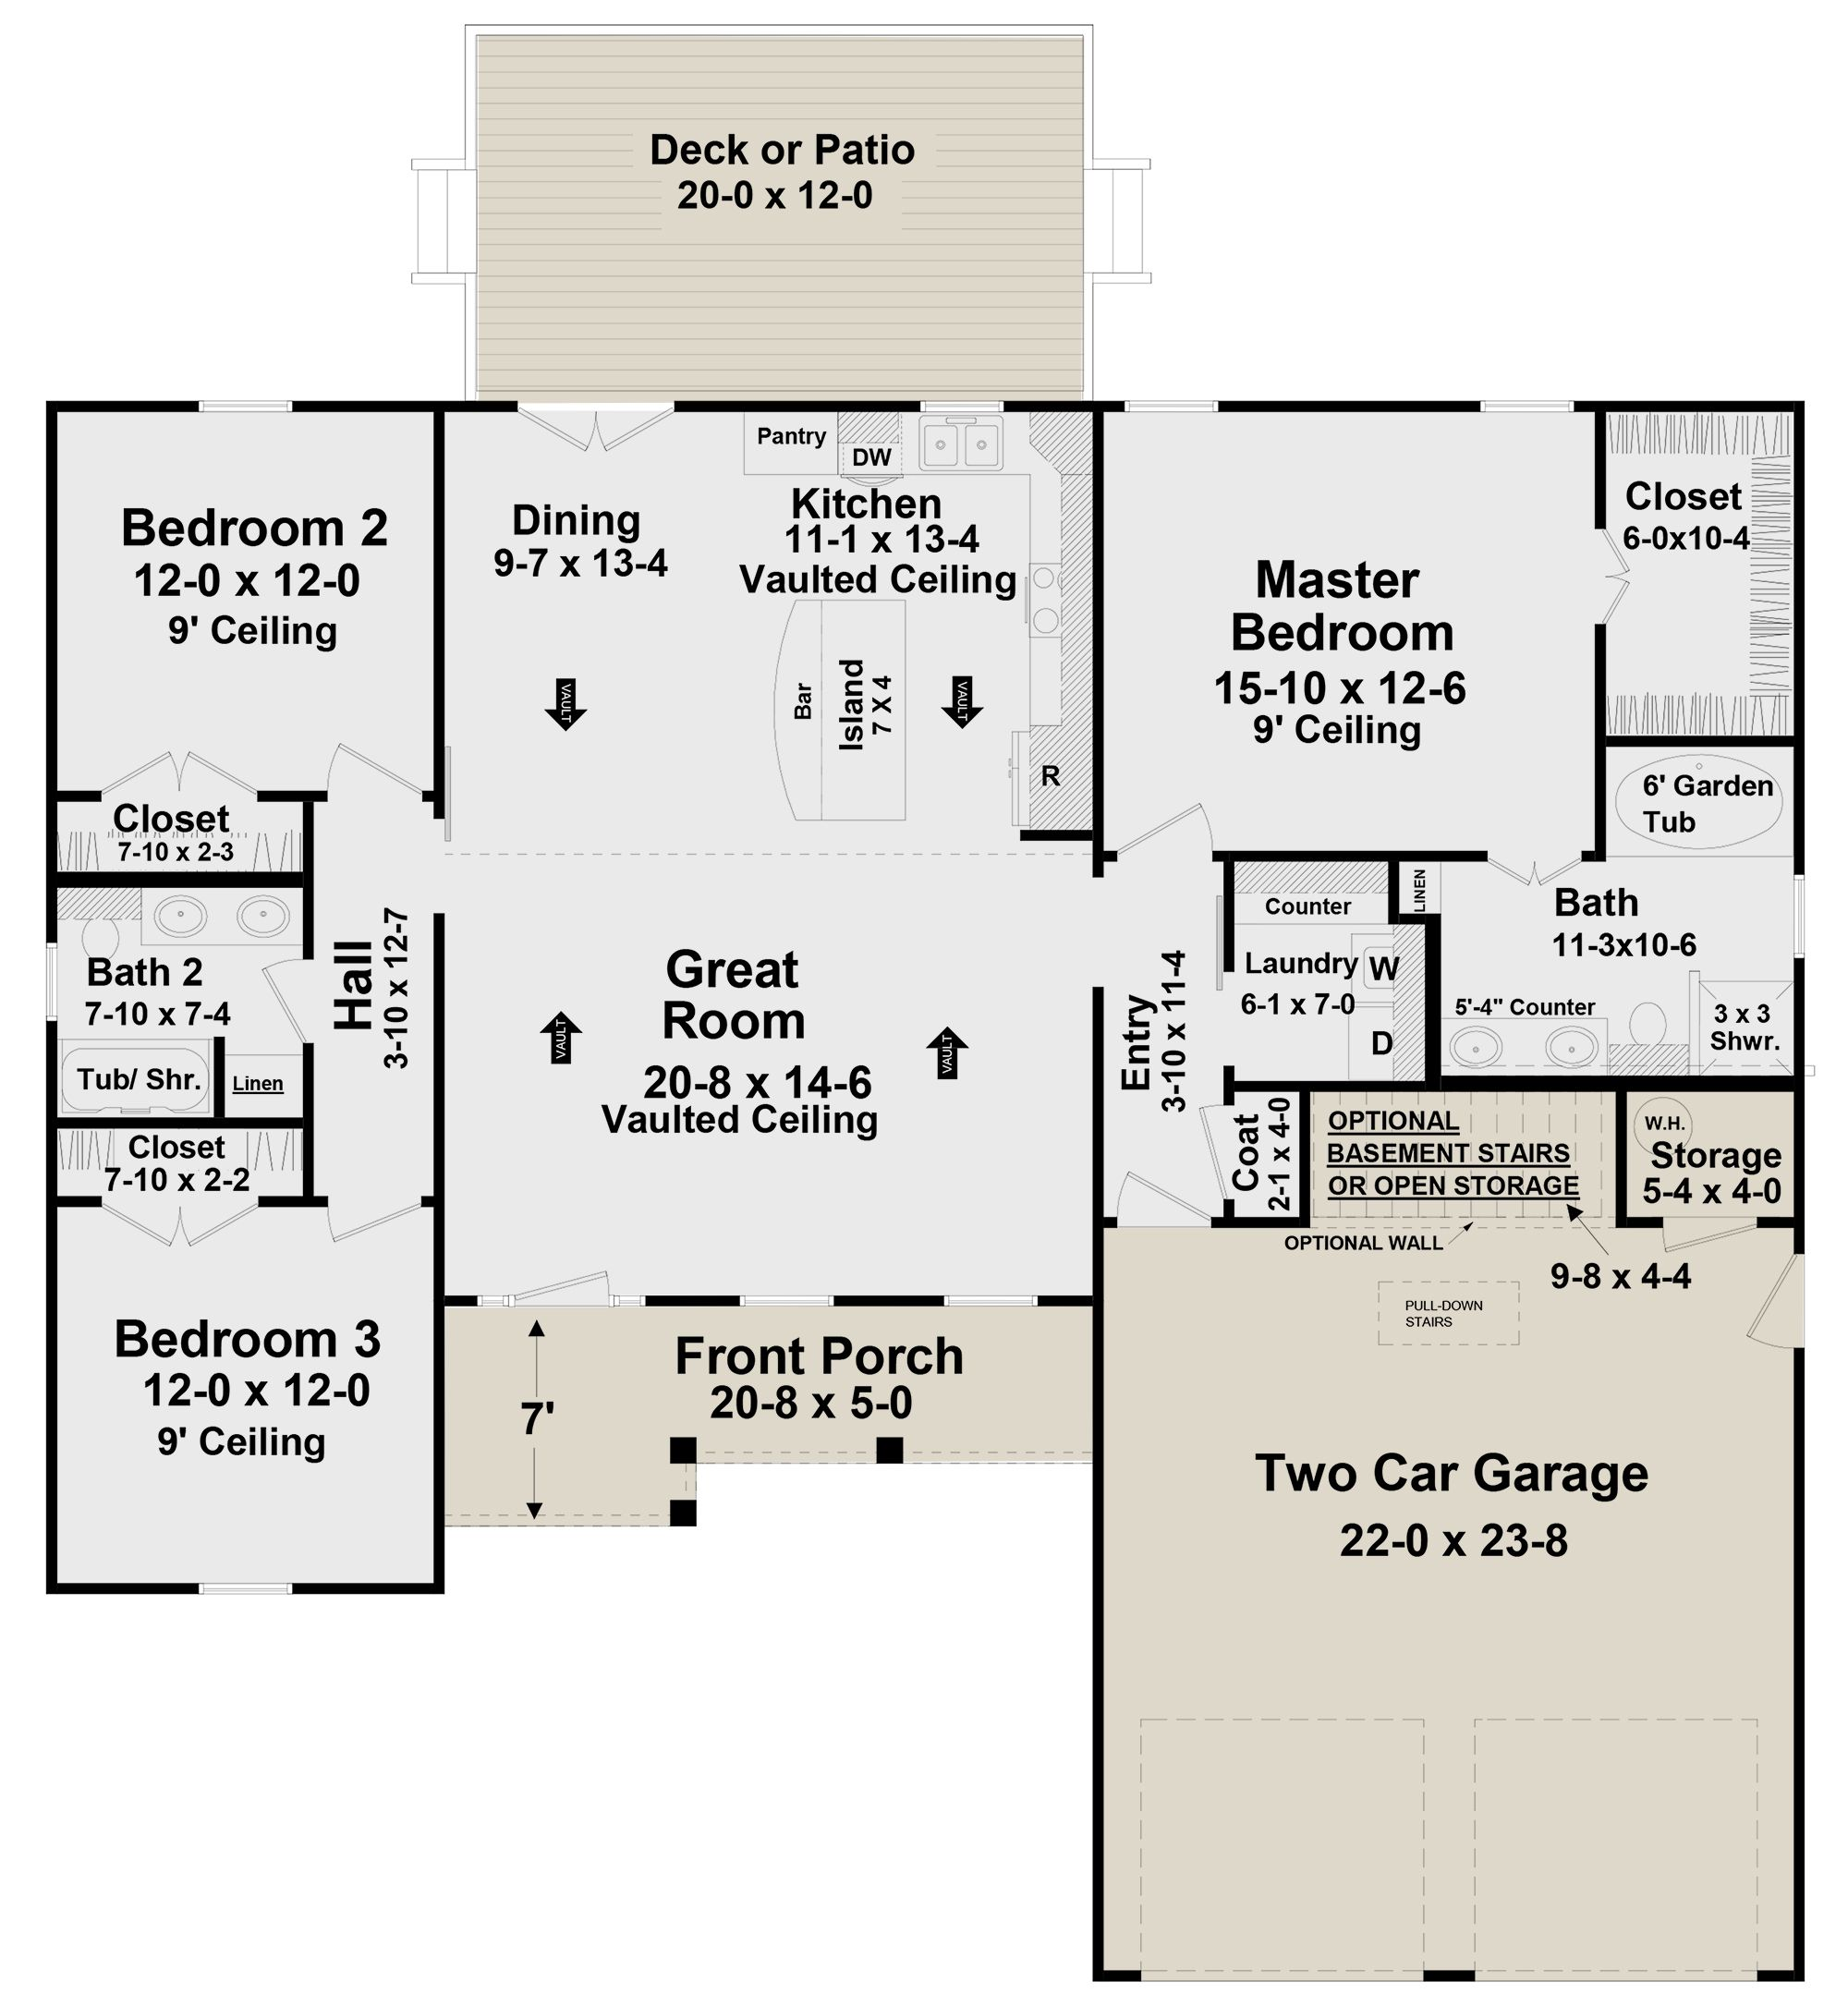 House Plan 348 00290 Modern Farmhouse Plan 1 600 Square Feet 3 Bedrooms 2 Bathrooms In 2021 Modern Farmhouse Plans Farmhouse Plans Lake House Plans